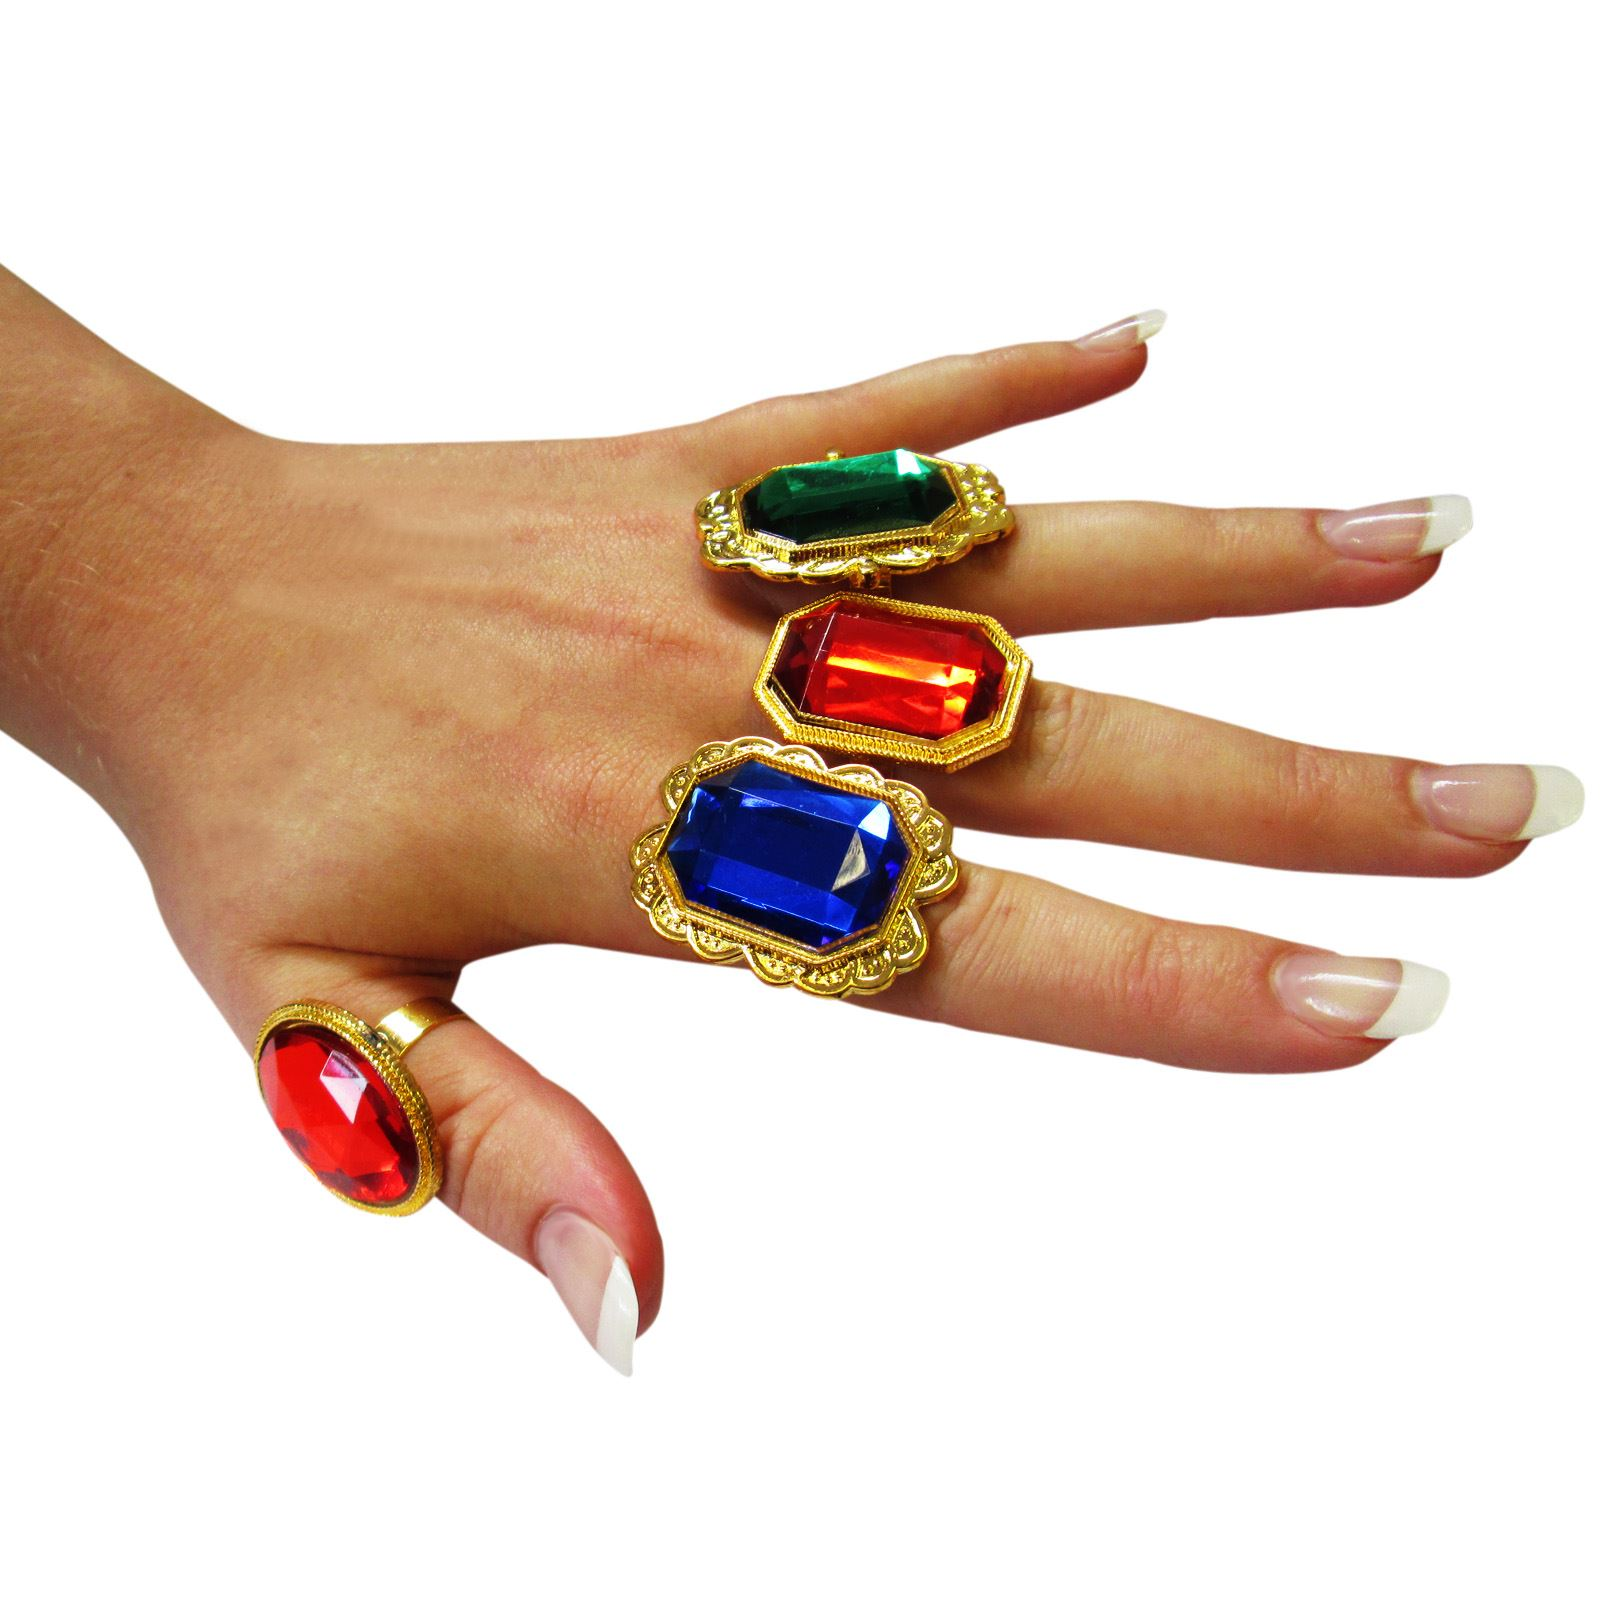 image photo view cropped royalty little stock free putting rings plastic girl on